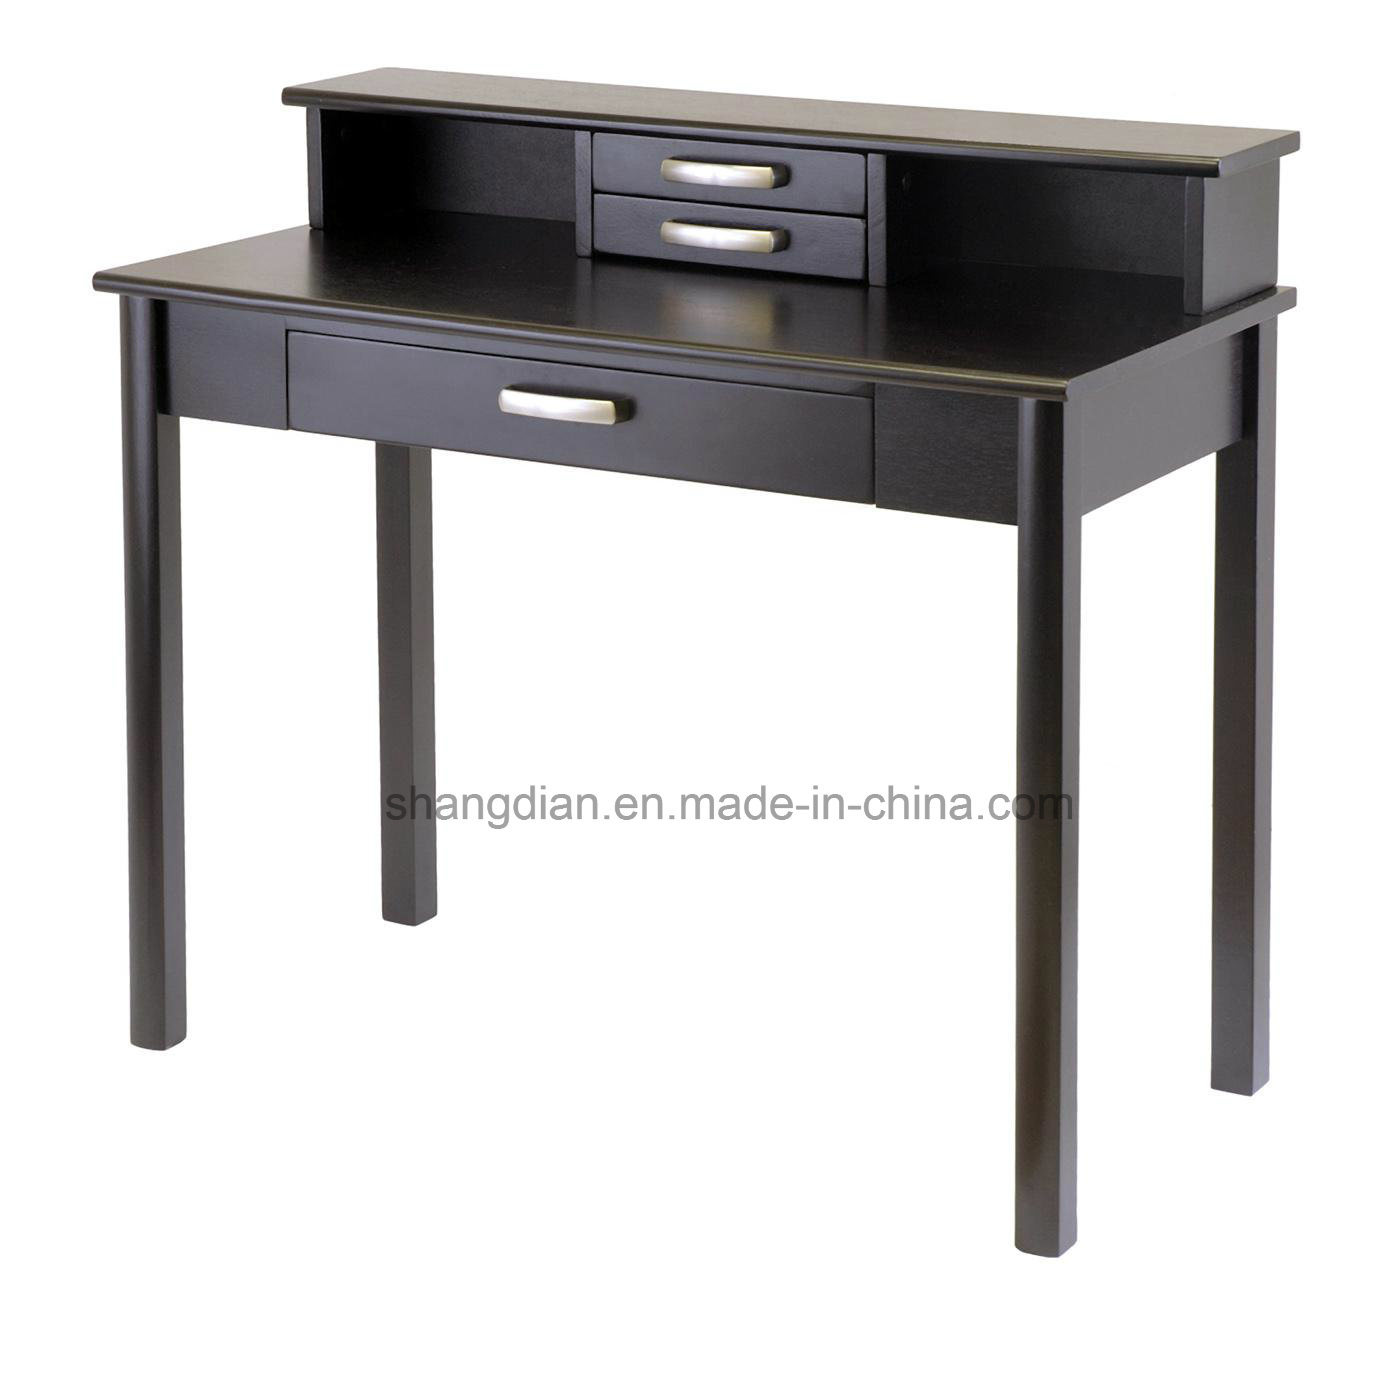 China Top Quality Solid Wood Legs Used Writing Desk For St0054 Hotel Room Wooden